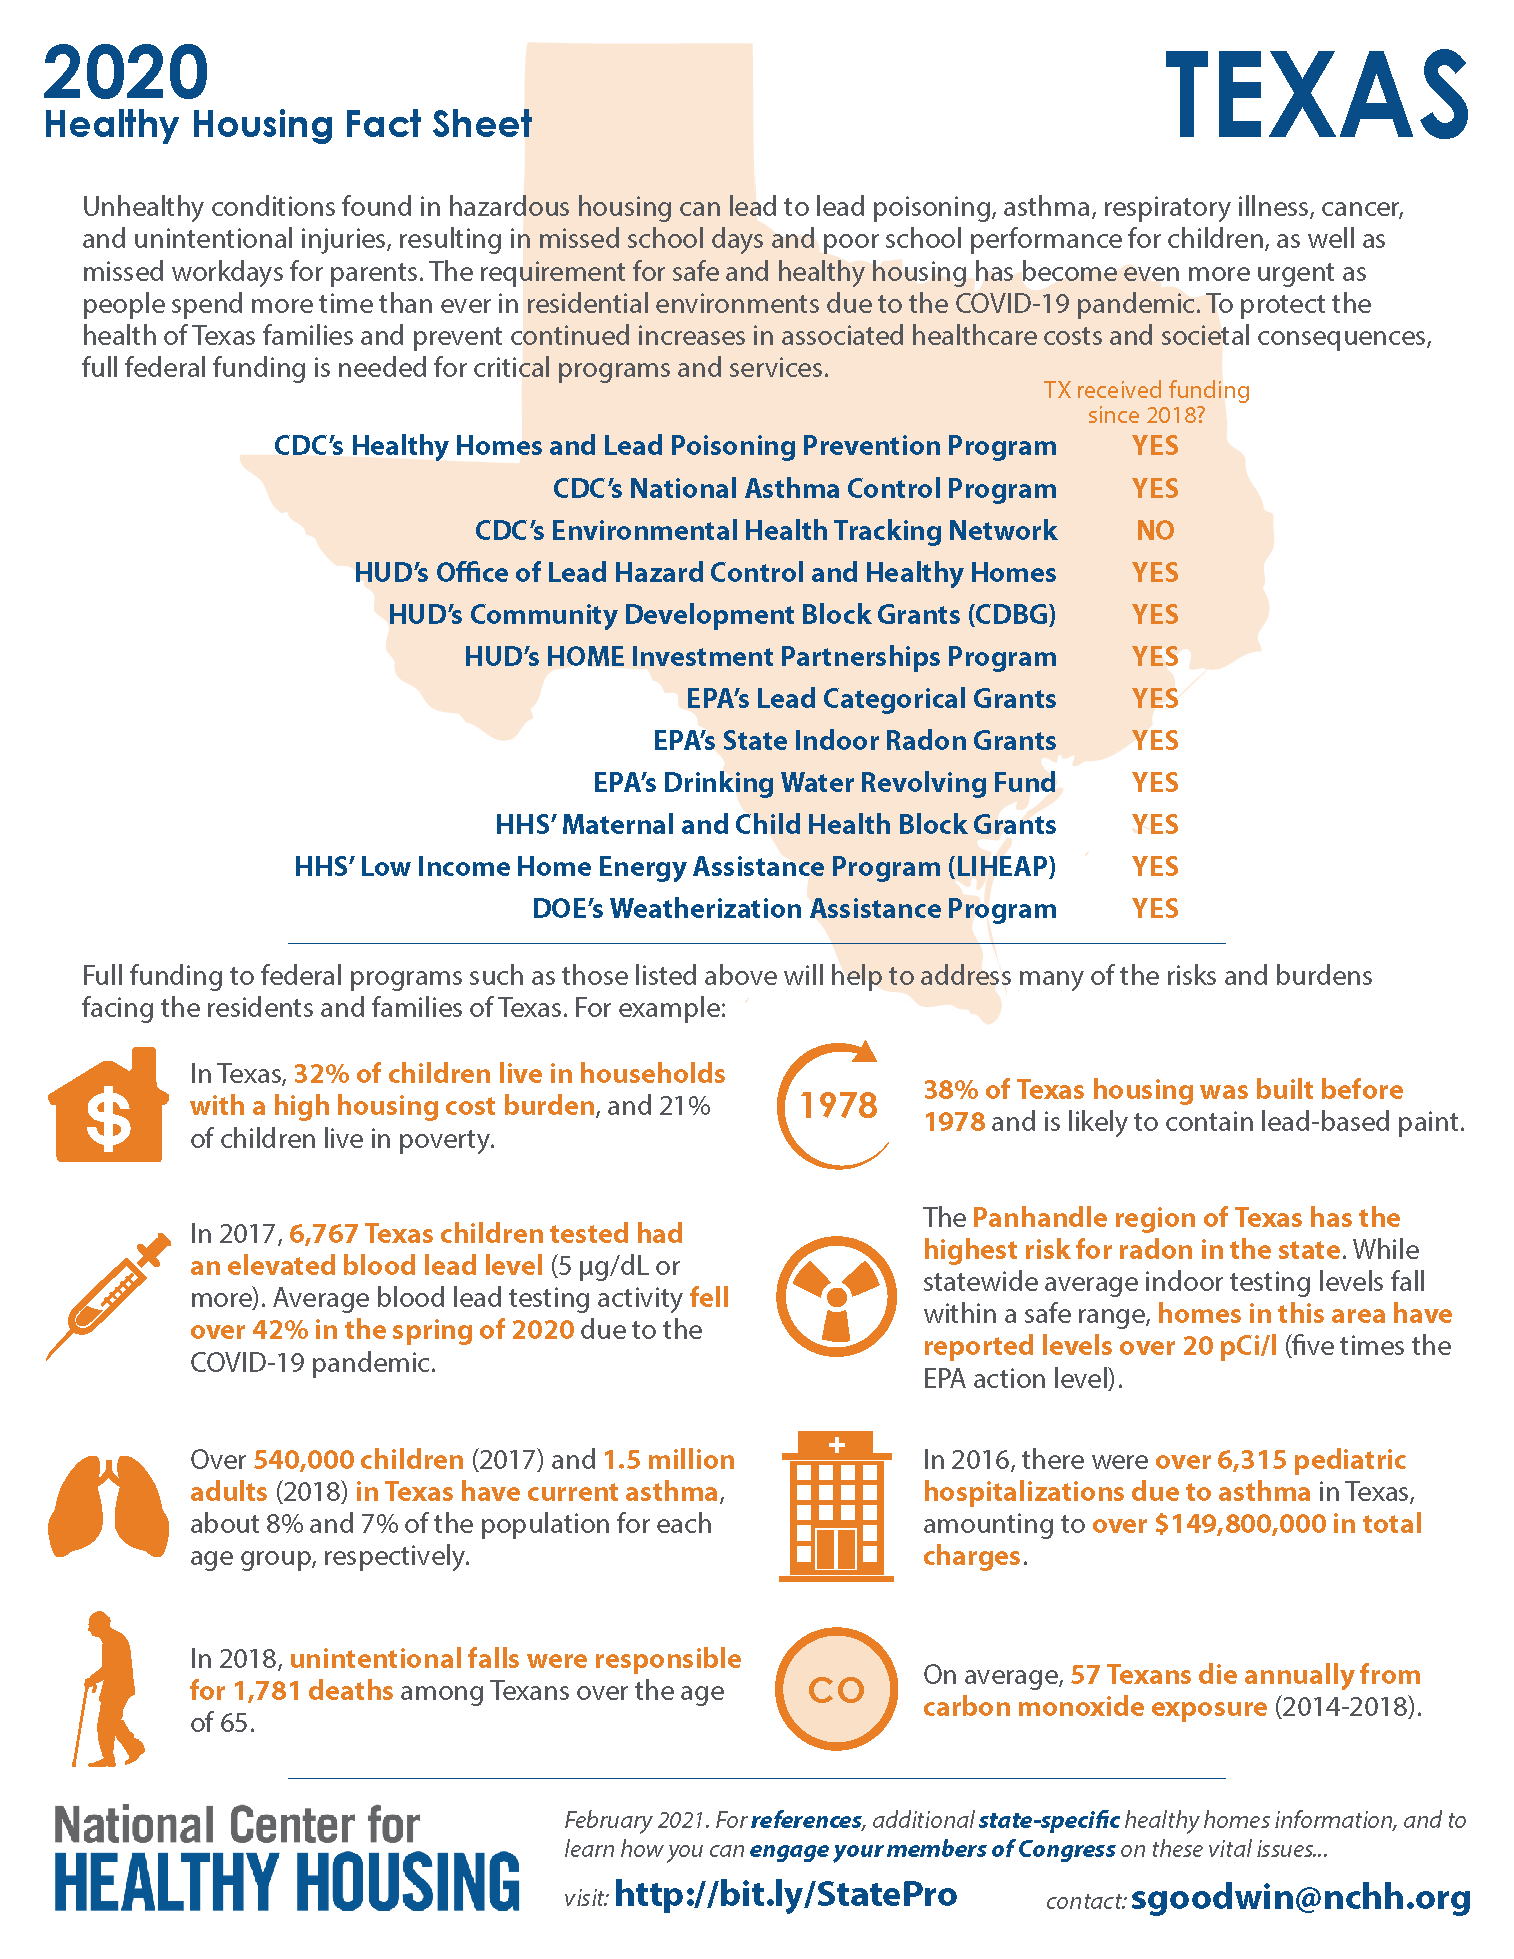 Healthy Housing Fact Sheet - Texas 2020